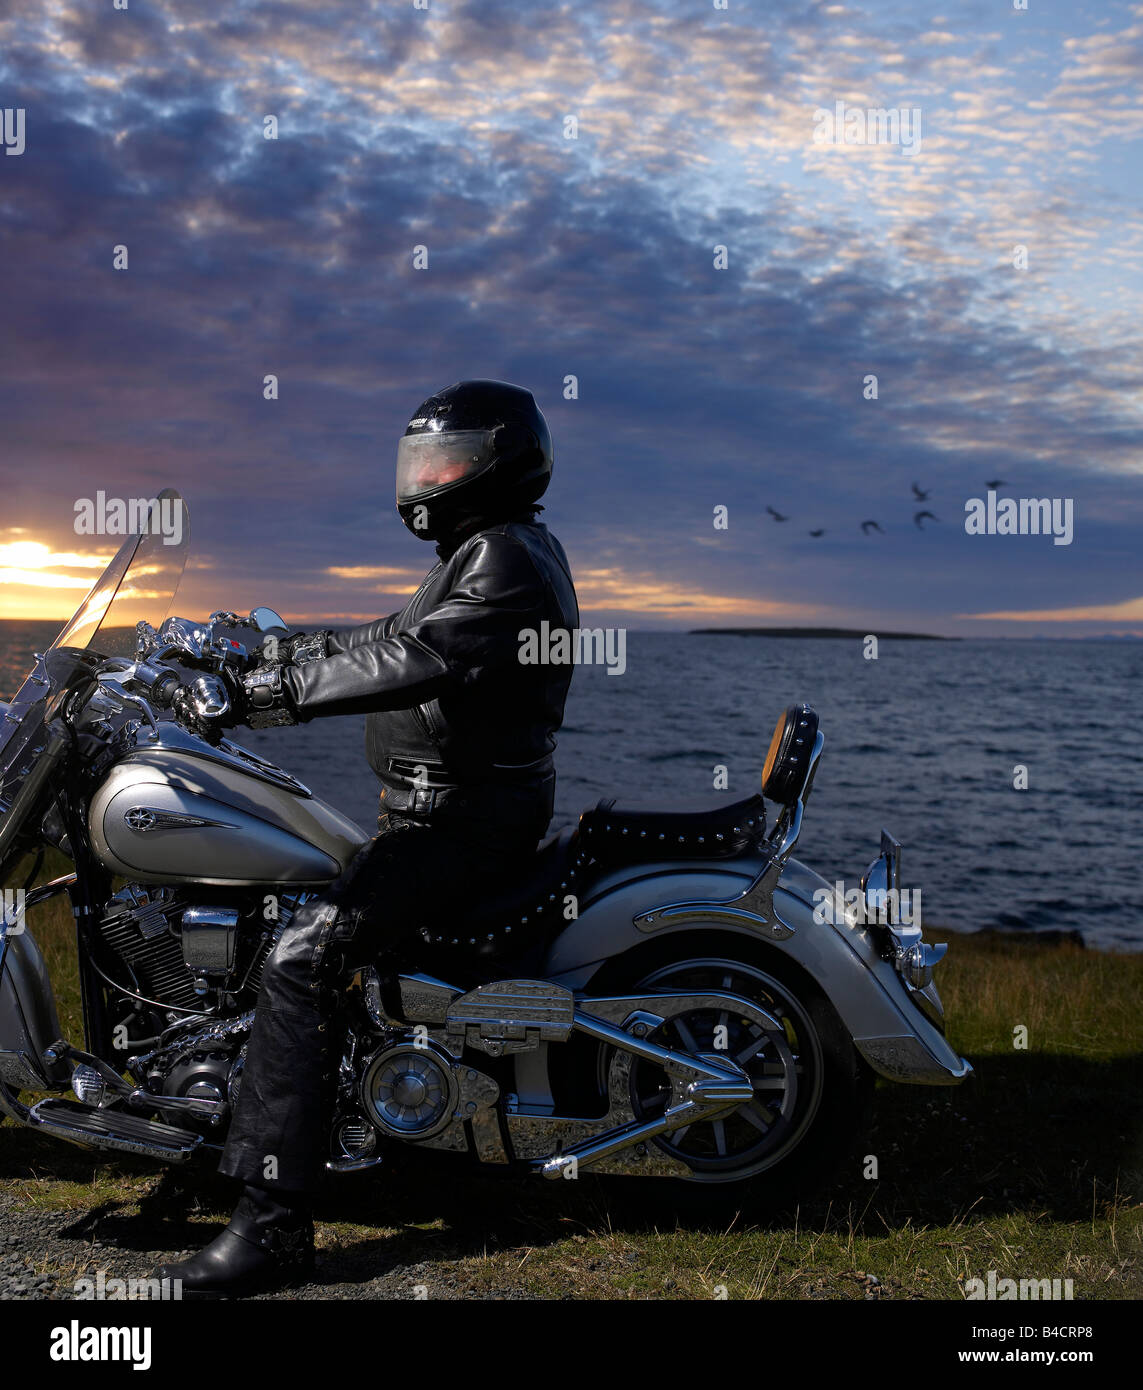 Motorcycle rider by the sea, Reykjavik Iceland - Stock Image